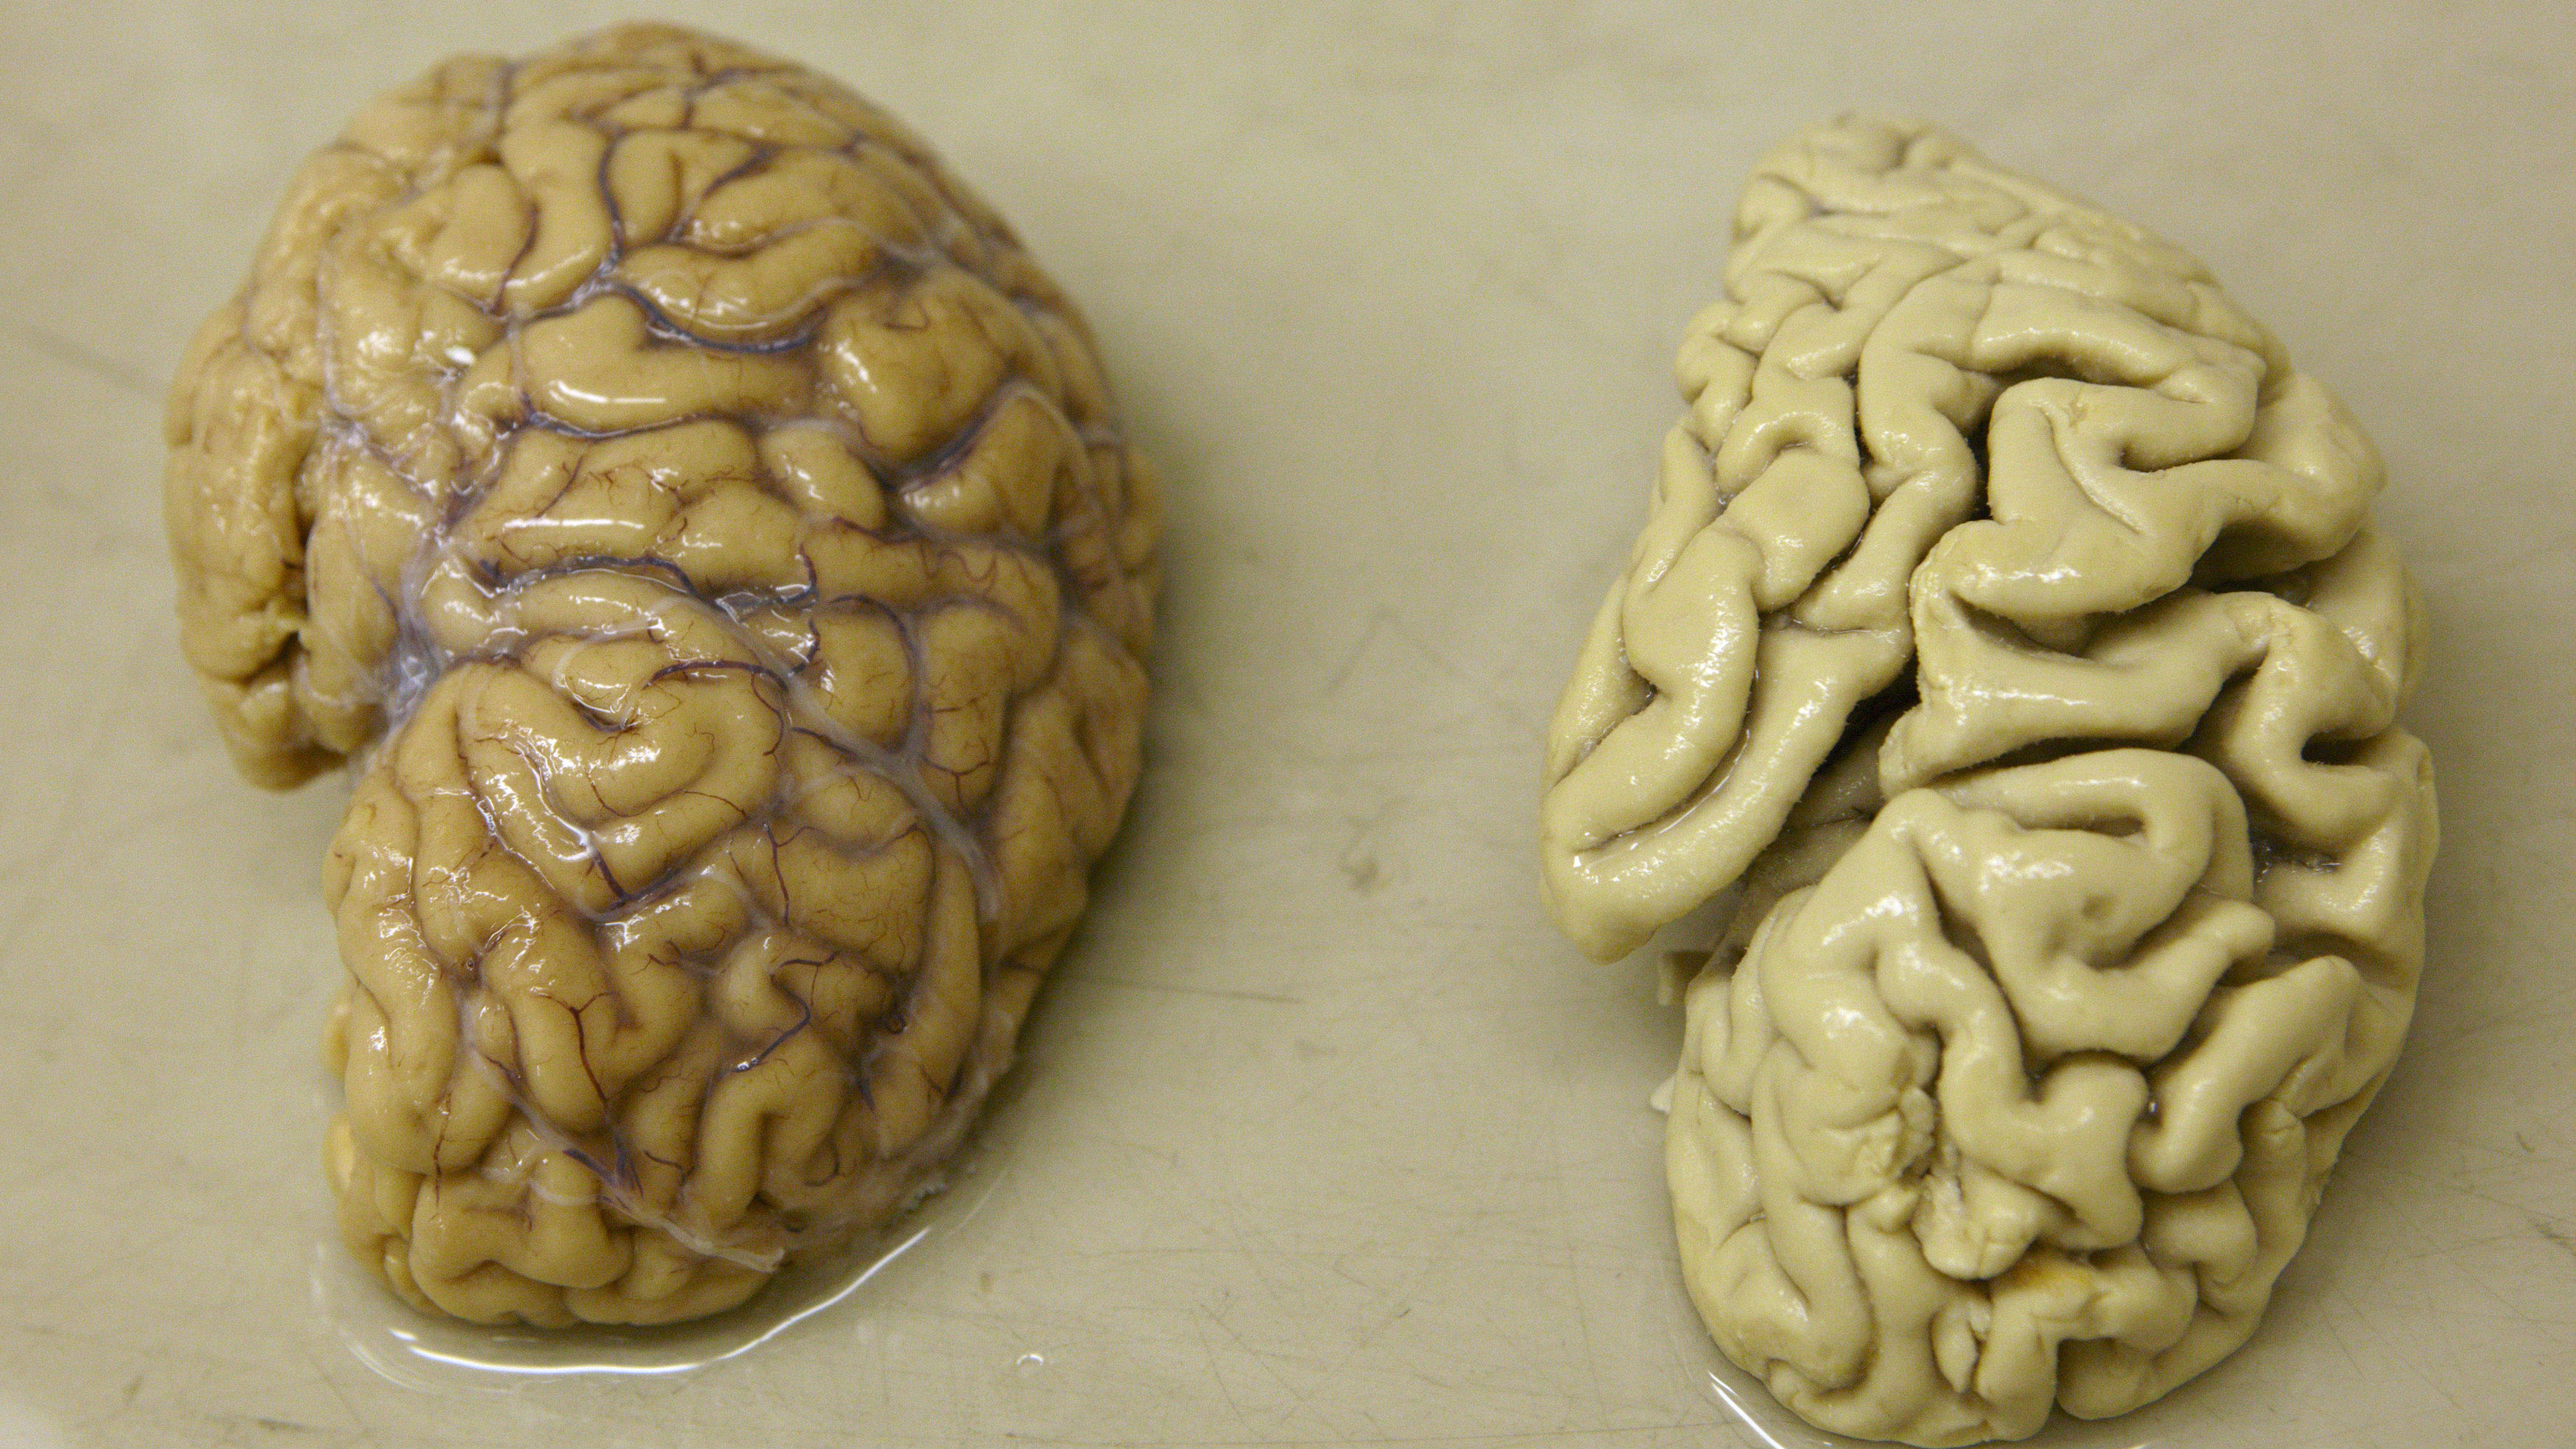 A healthy brain next to a brain with Alzheimer's disease.